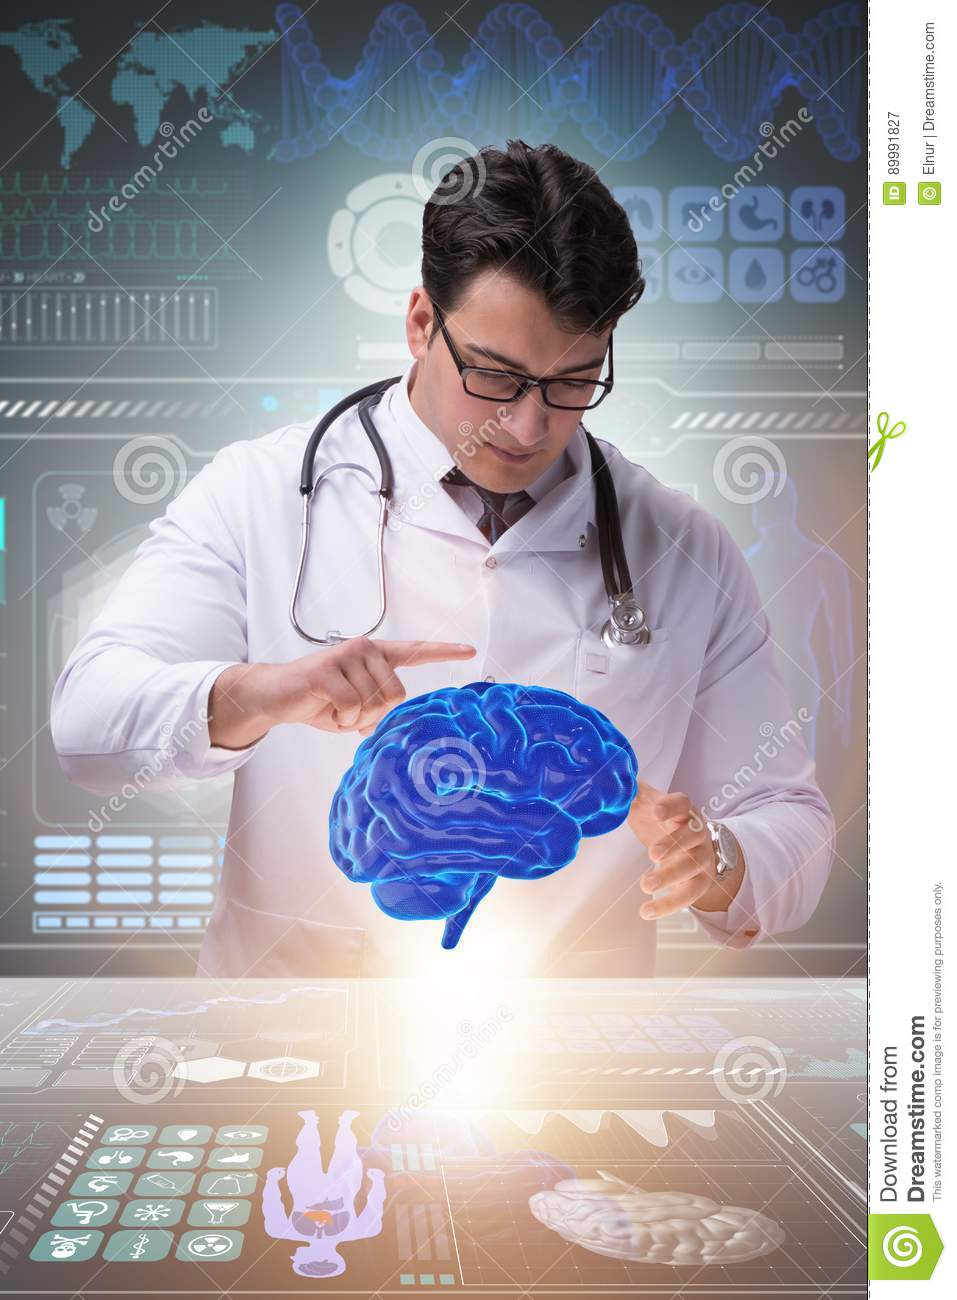 an analysis of the new computer technology in artificial intelligence use in medicine police and man For artificial intelligence,  even neural networks aren't new to medicine  politics, fitness and wellness, hobbies, technology use,.